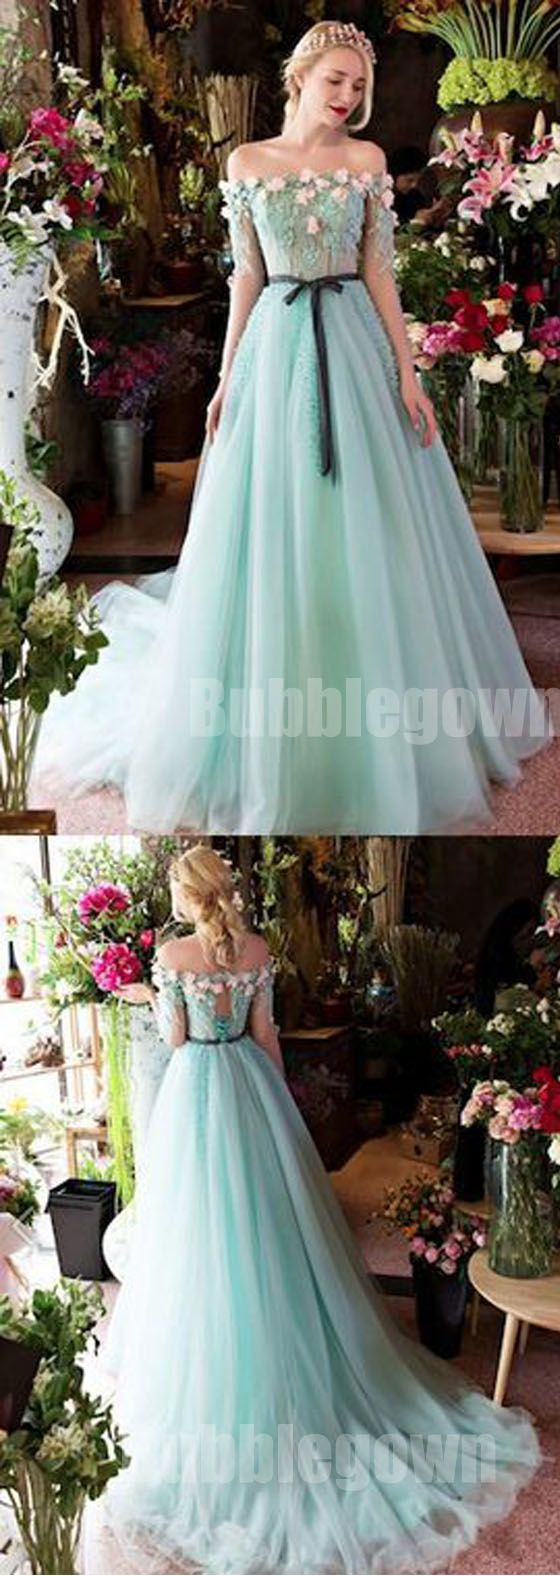 Off the shoulder charming half sleeves long evening prom dresses